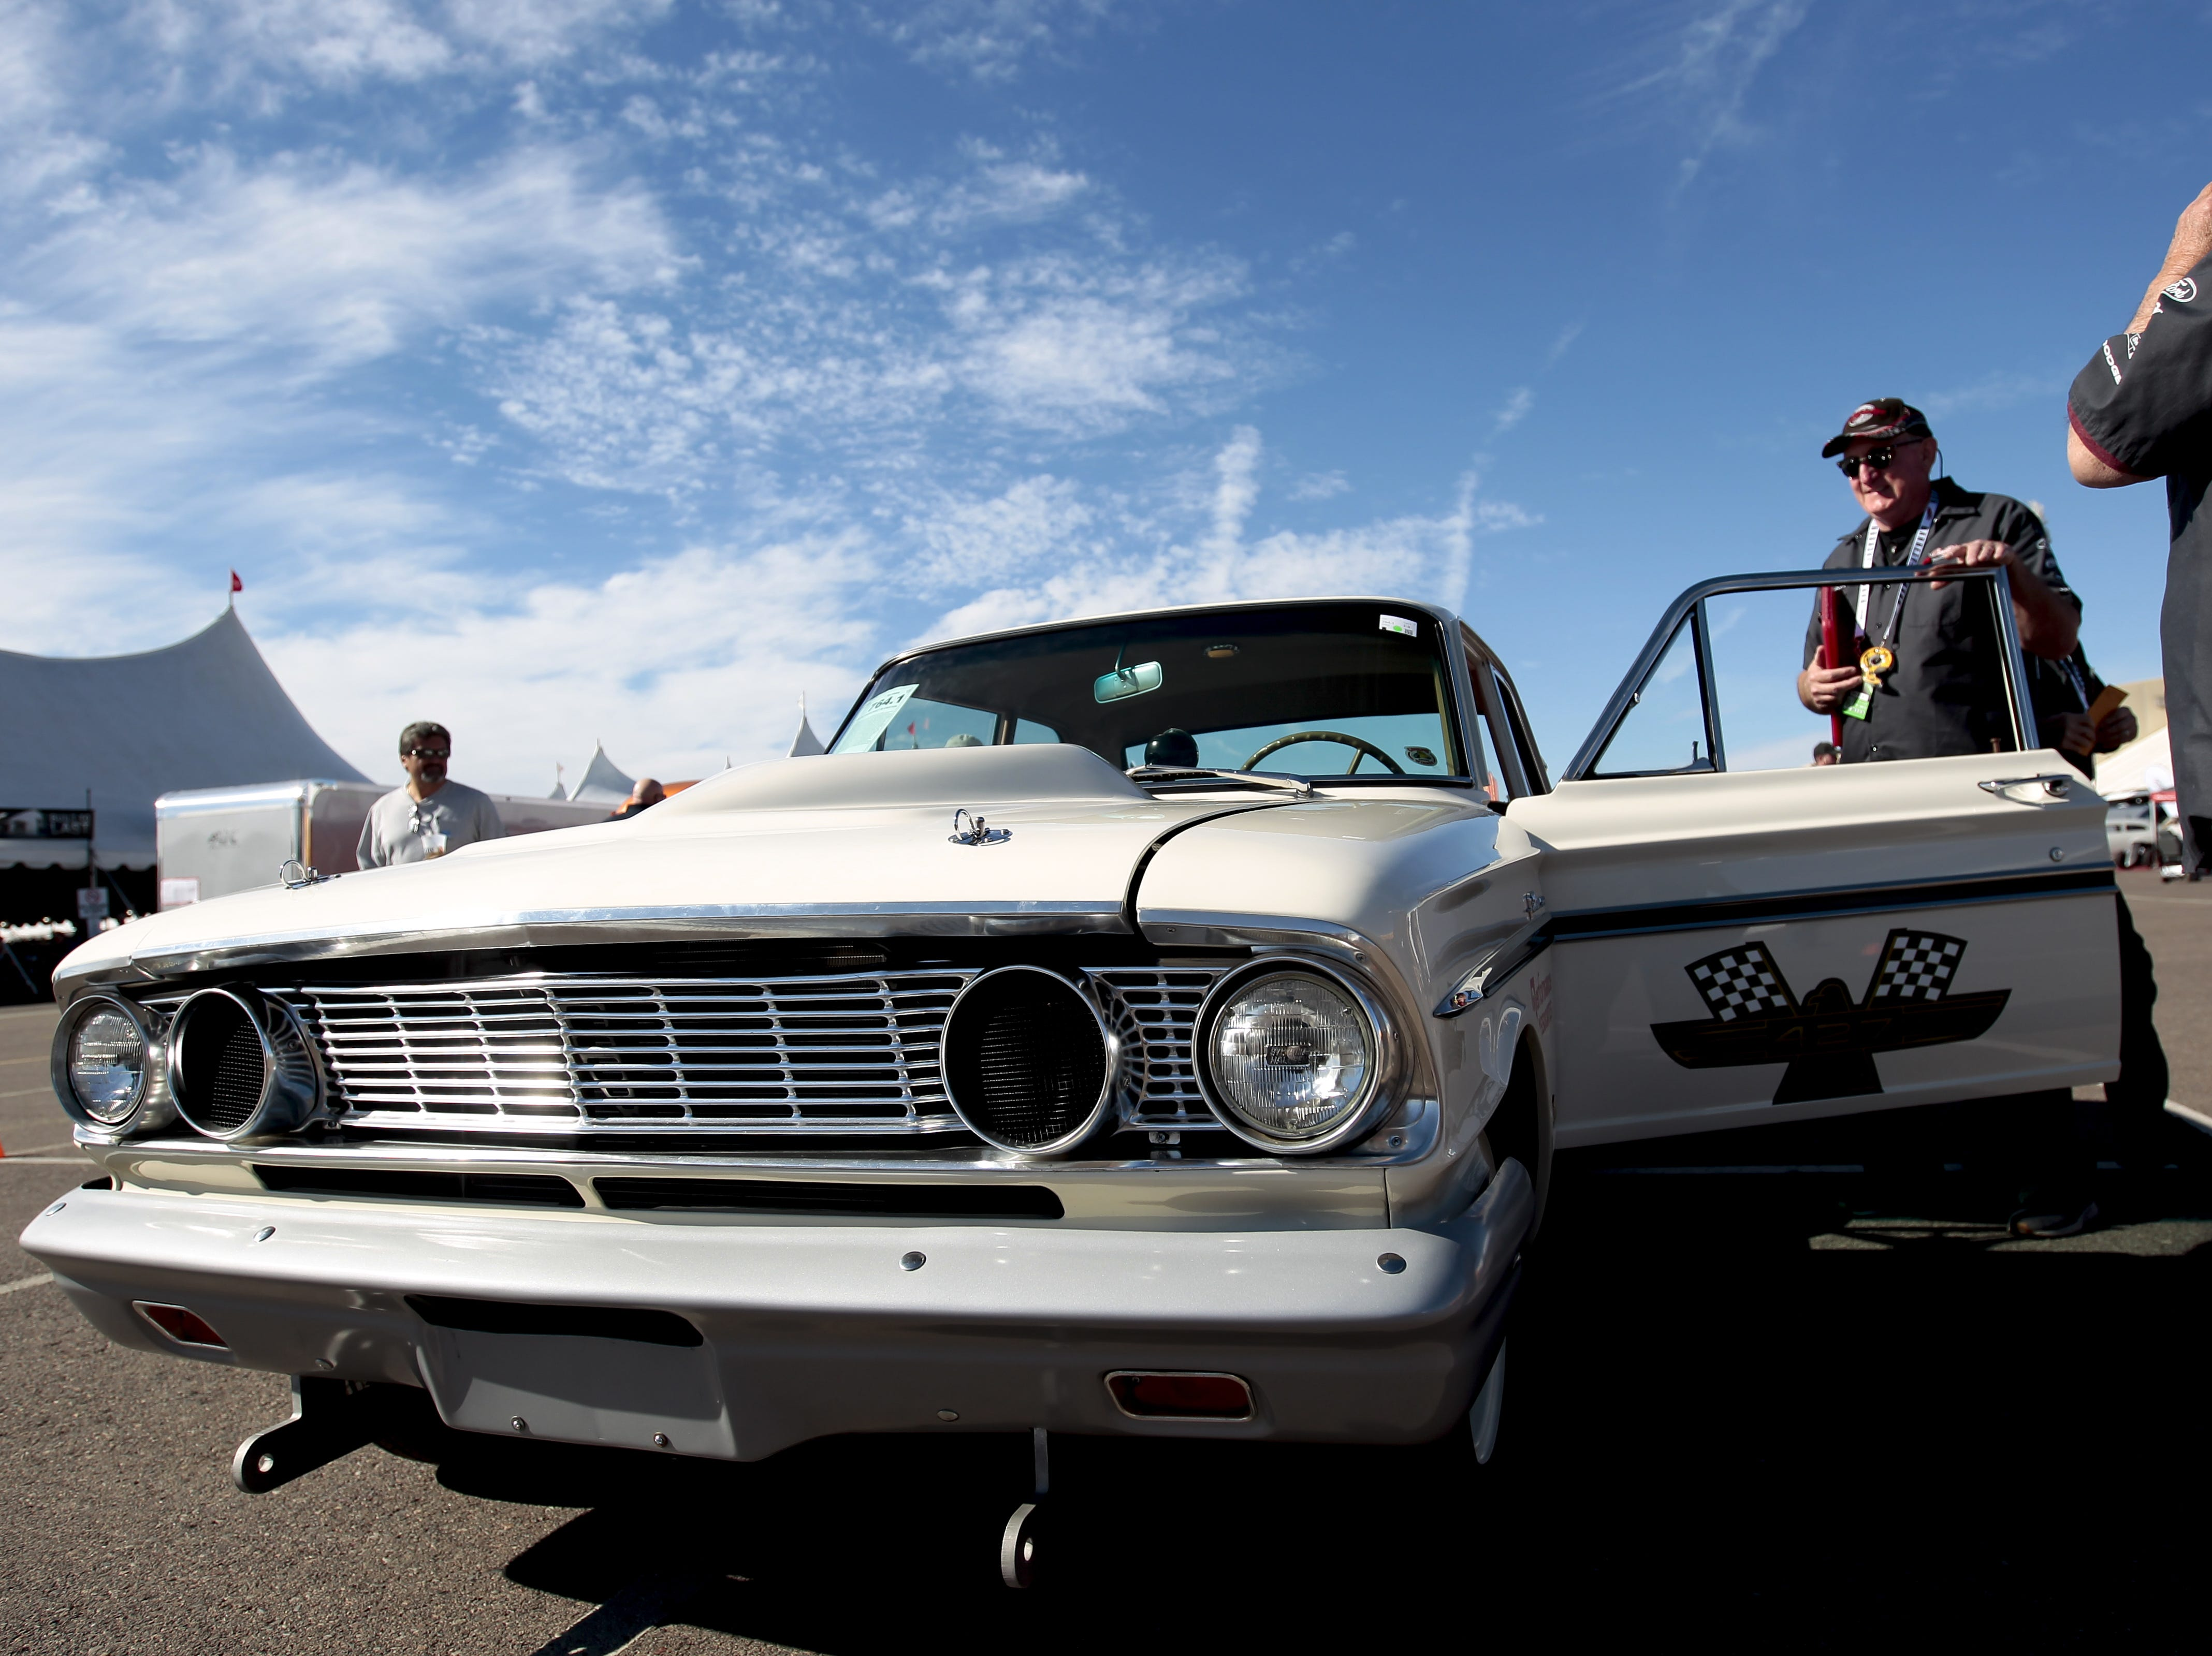 Barrett-Jackson driver Rick Eckenrode steps into a 1964 Ford Fairlane Thunderbolt Recreation on Jan. 12, the first day of the car auction.